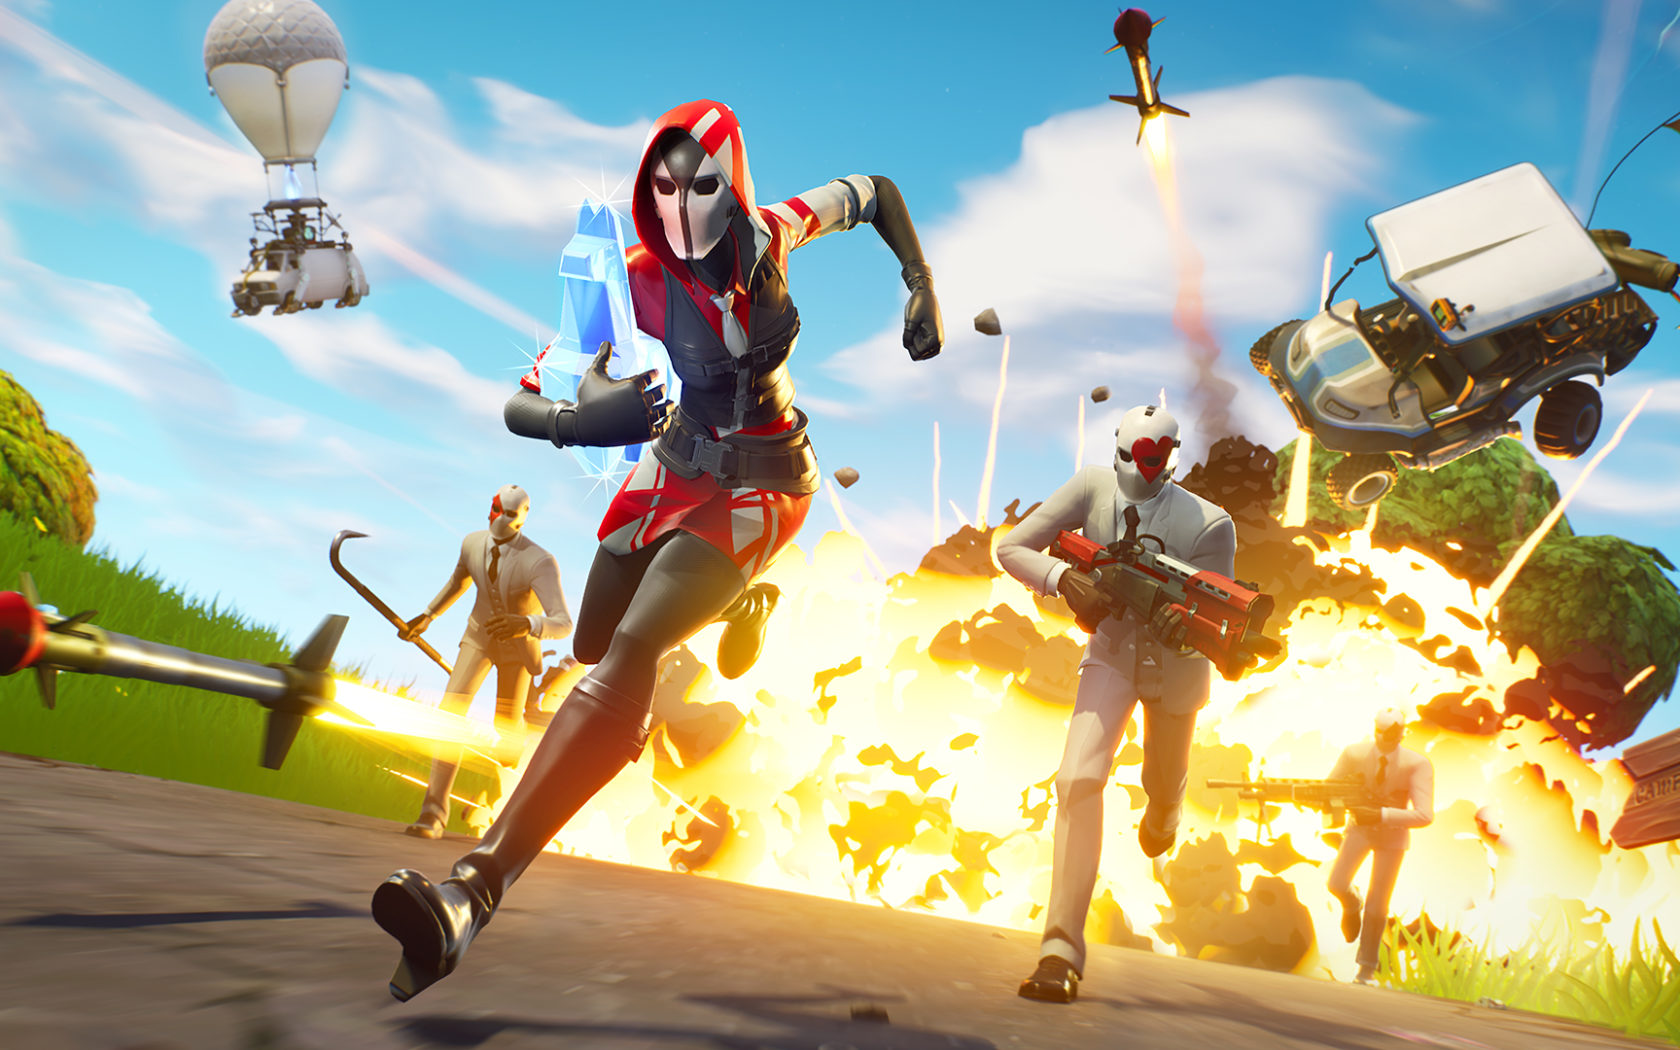 fortnite desktop wallpapers 17 computer background images - fortnite computer background